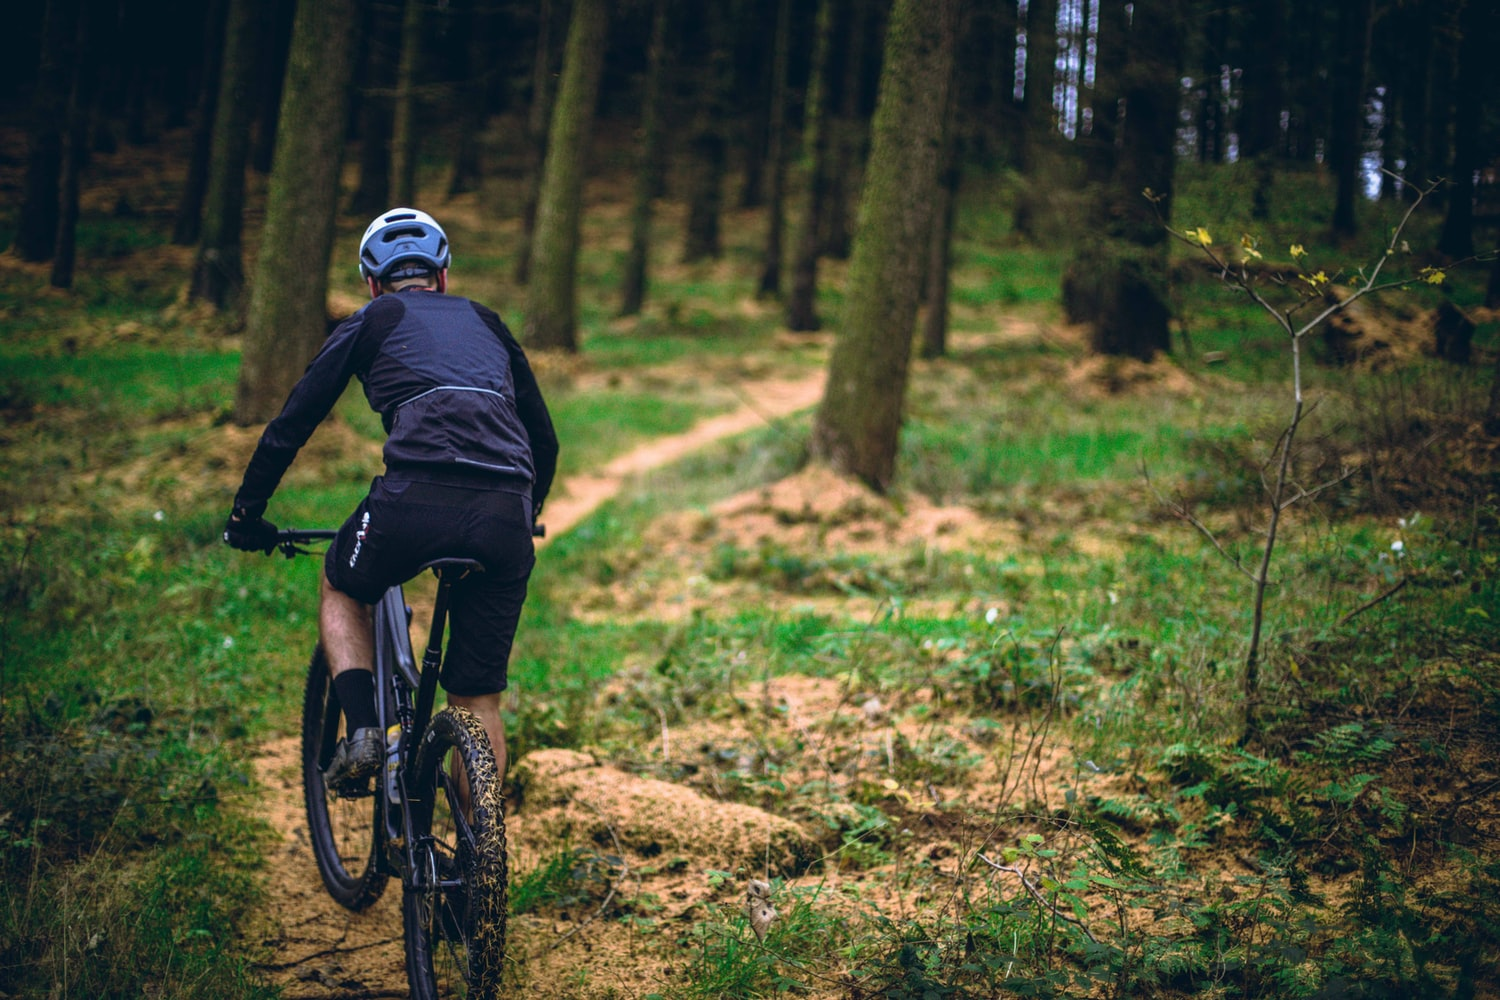 Man with blue helmet riding mountain bike